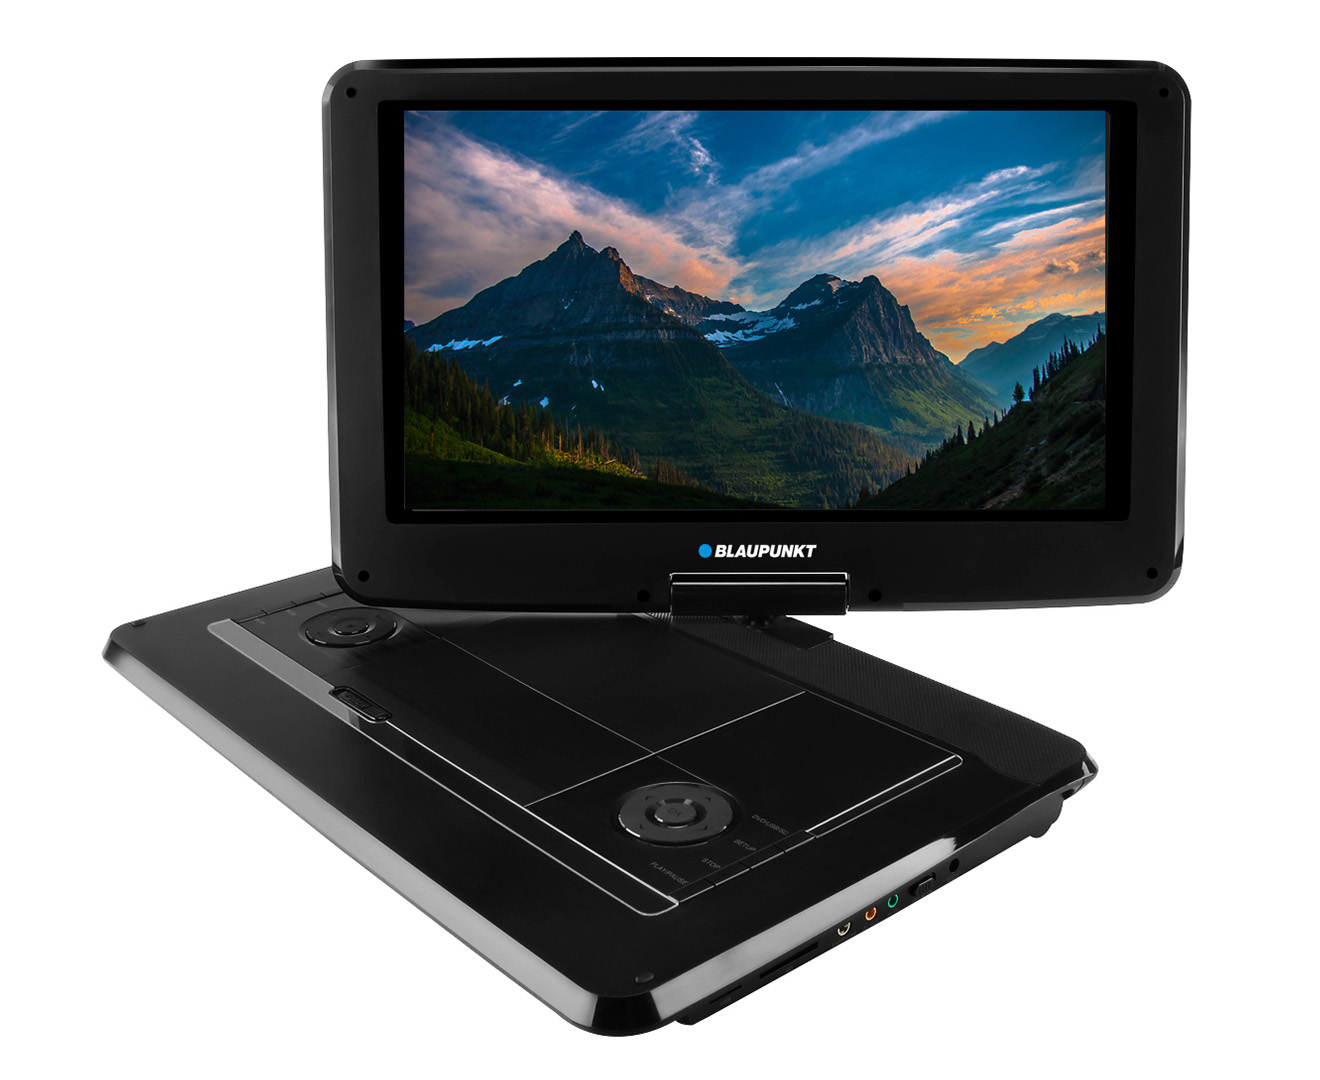 blaupunkt portable 14 dvd player black. Black Bedroom Furniture Sets. Home Design Ideas